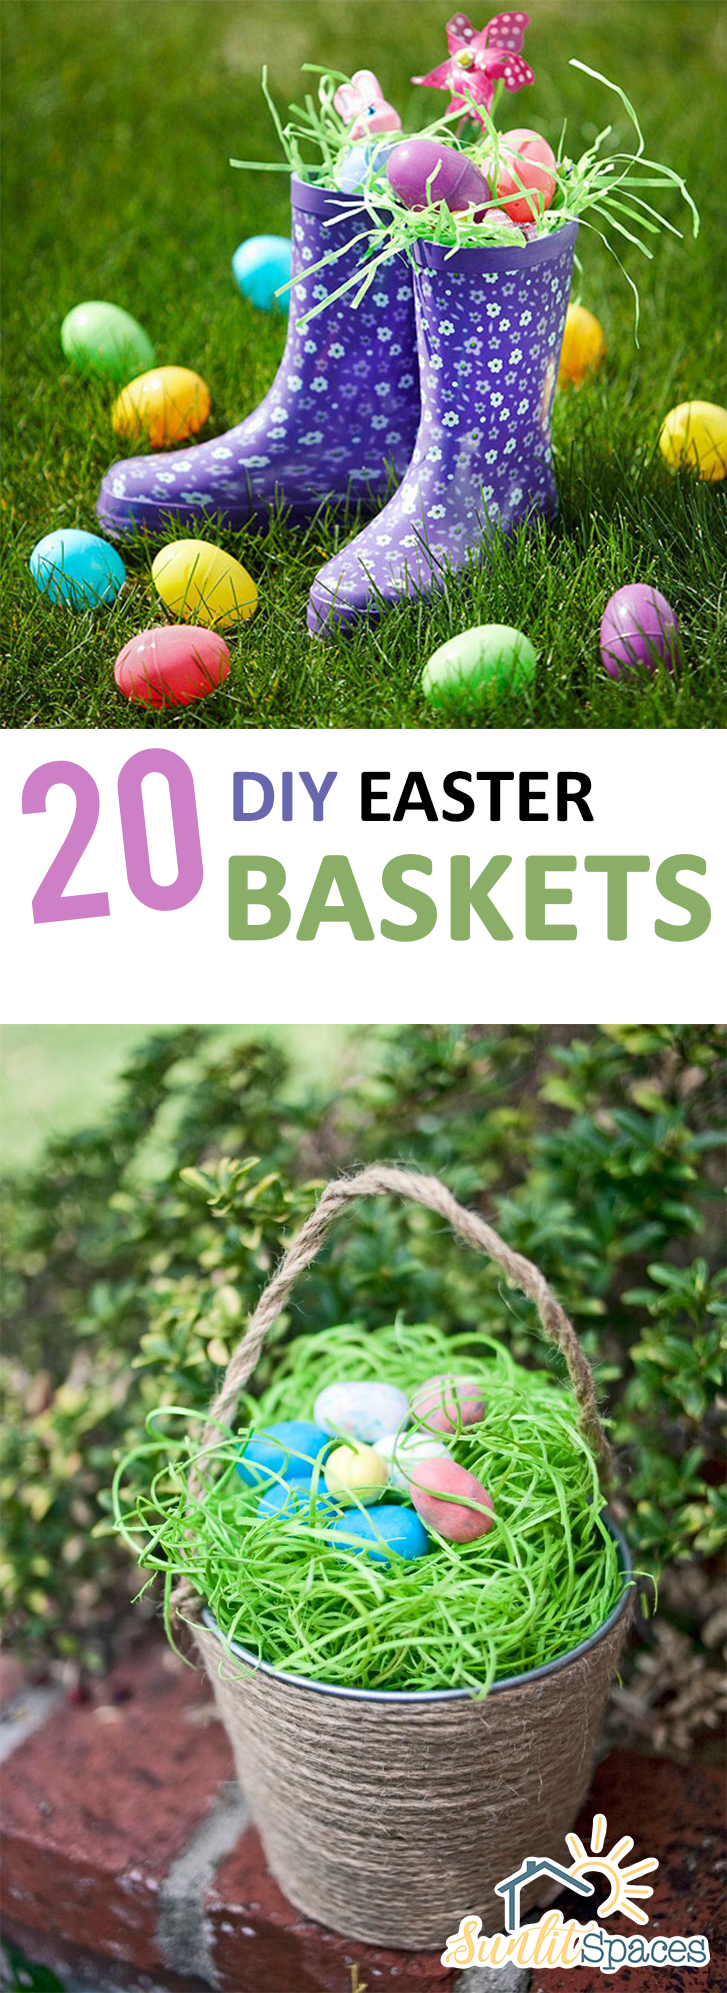 Easter Baskets, Homemade Easter Baskets, Easter Baskets, Easter, Easter Baskets for Less, Cheap Easter Baskets, Easter Gifts, Easter Gifts for Cheap, Cheap Easter Baskets, Popular Pin